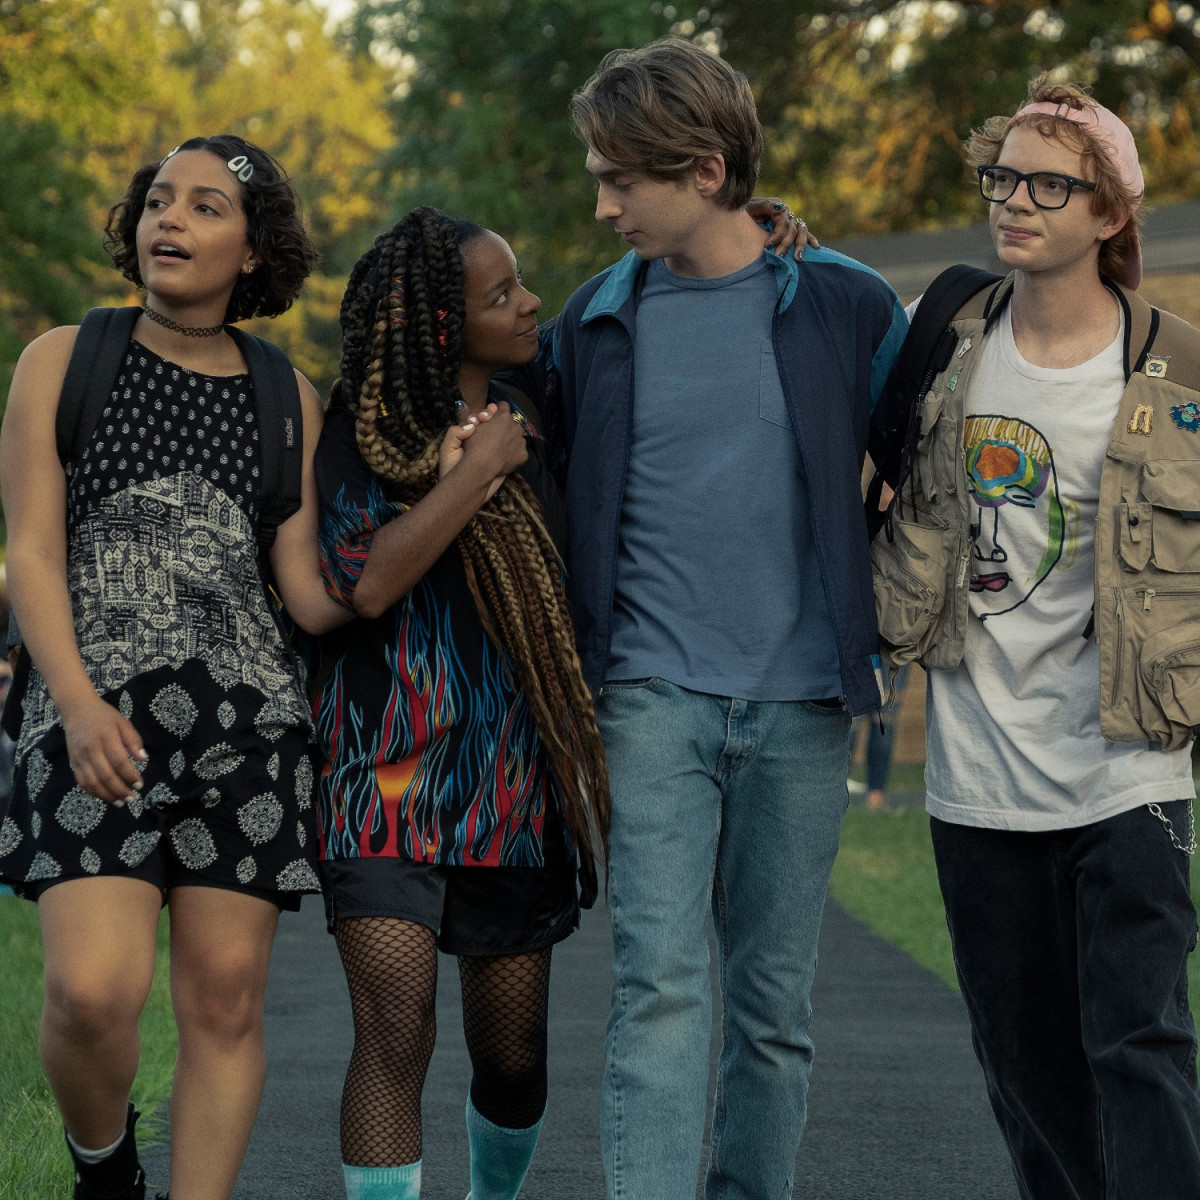 Coral Peña, Kara Young, Austin Abrams, and C.J. Hoff in Chemical Hearts